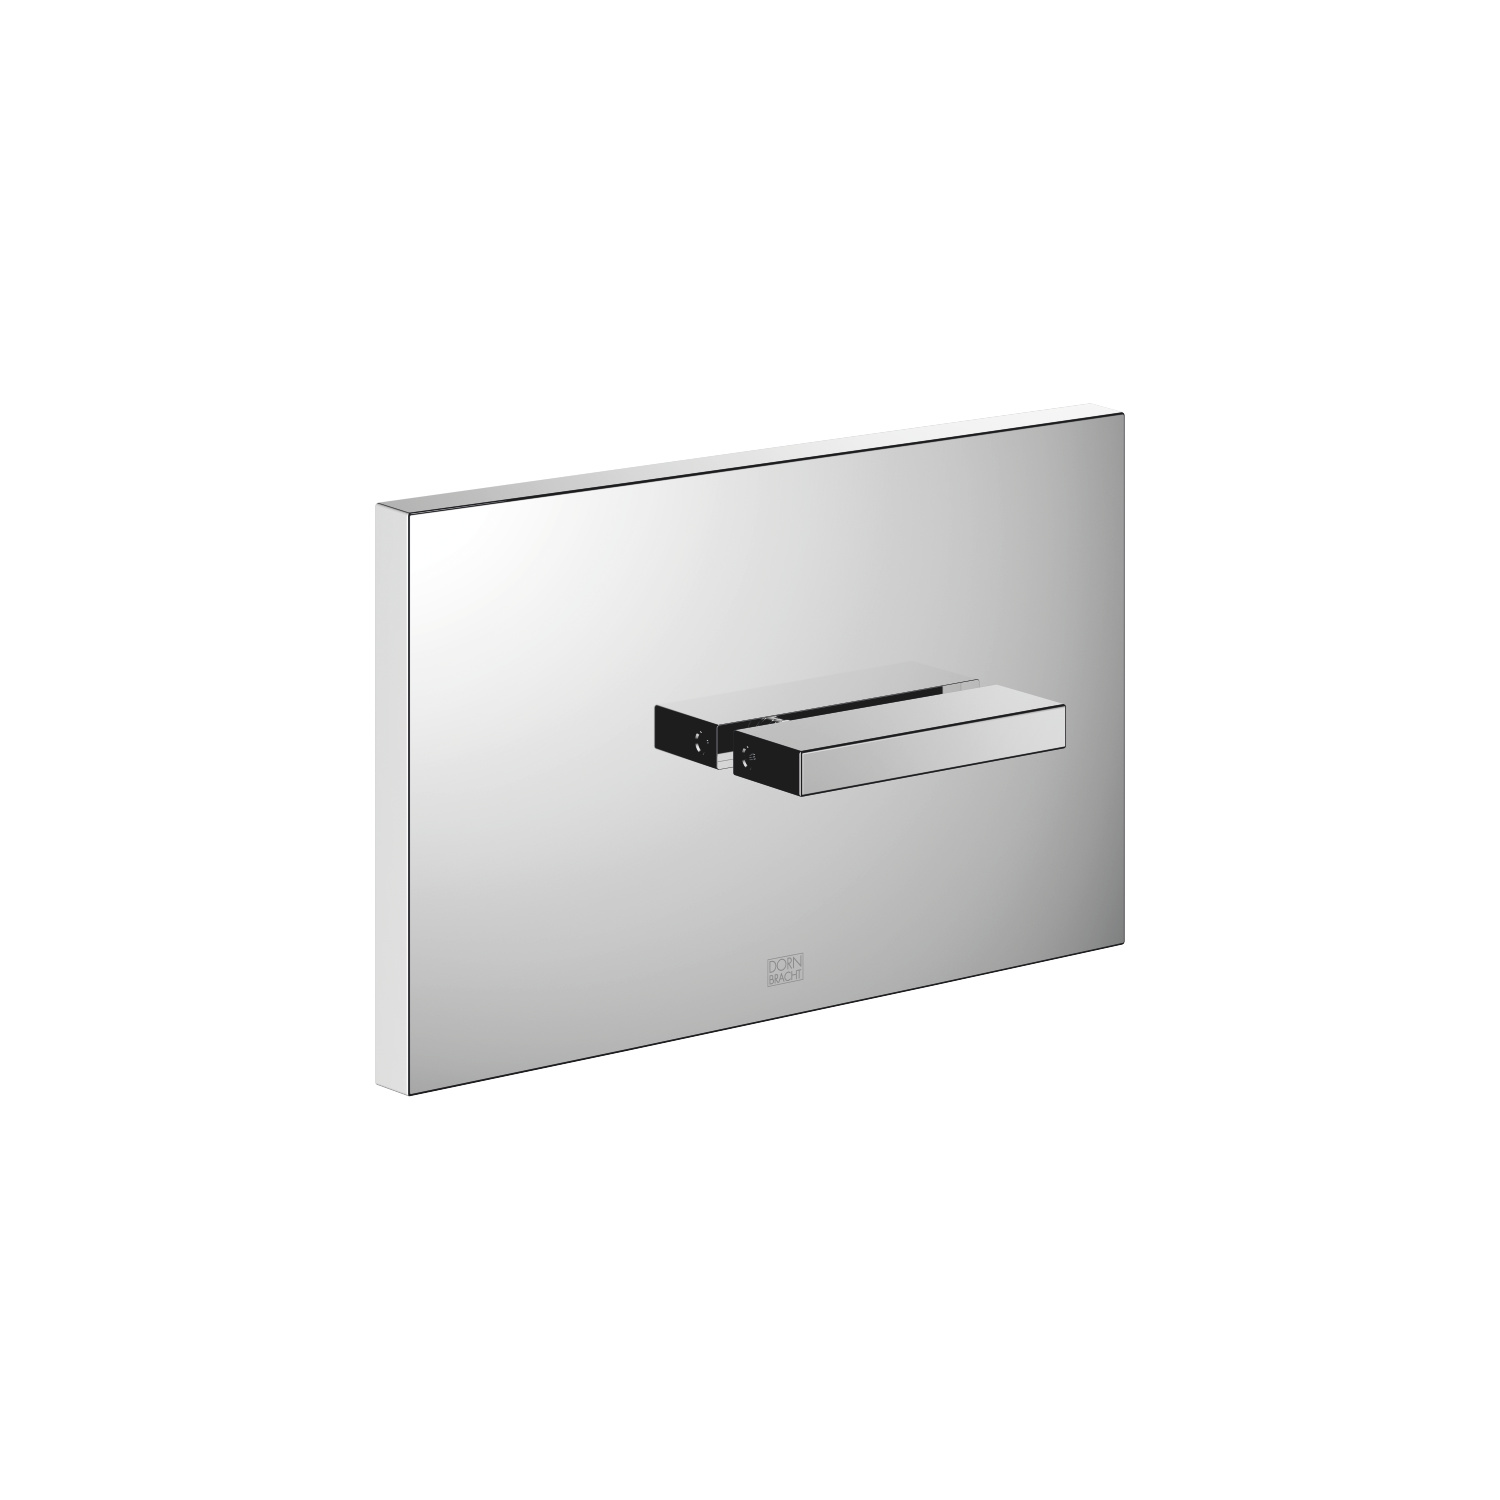 Cover plate for the concealed WC cistern made by TeCe - polished chrome